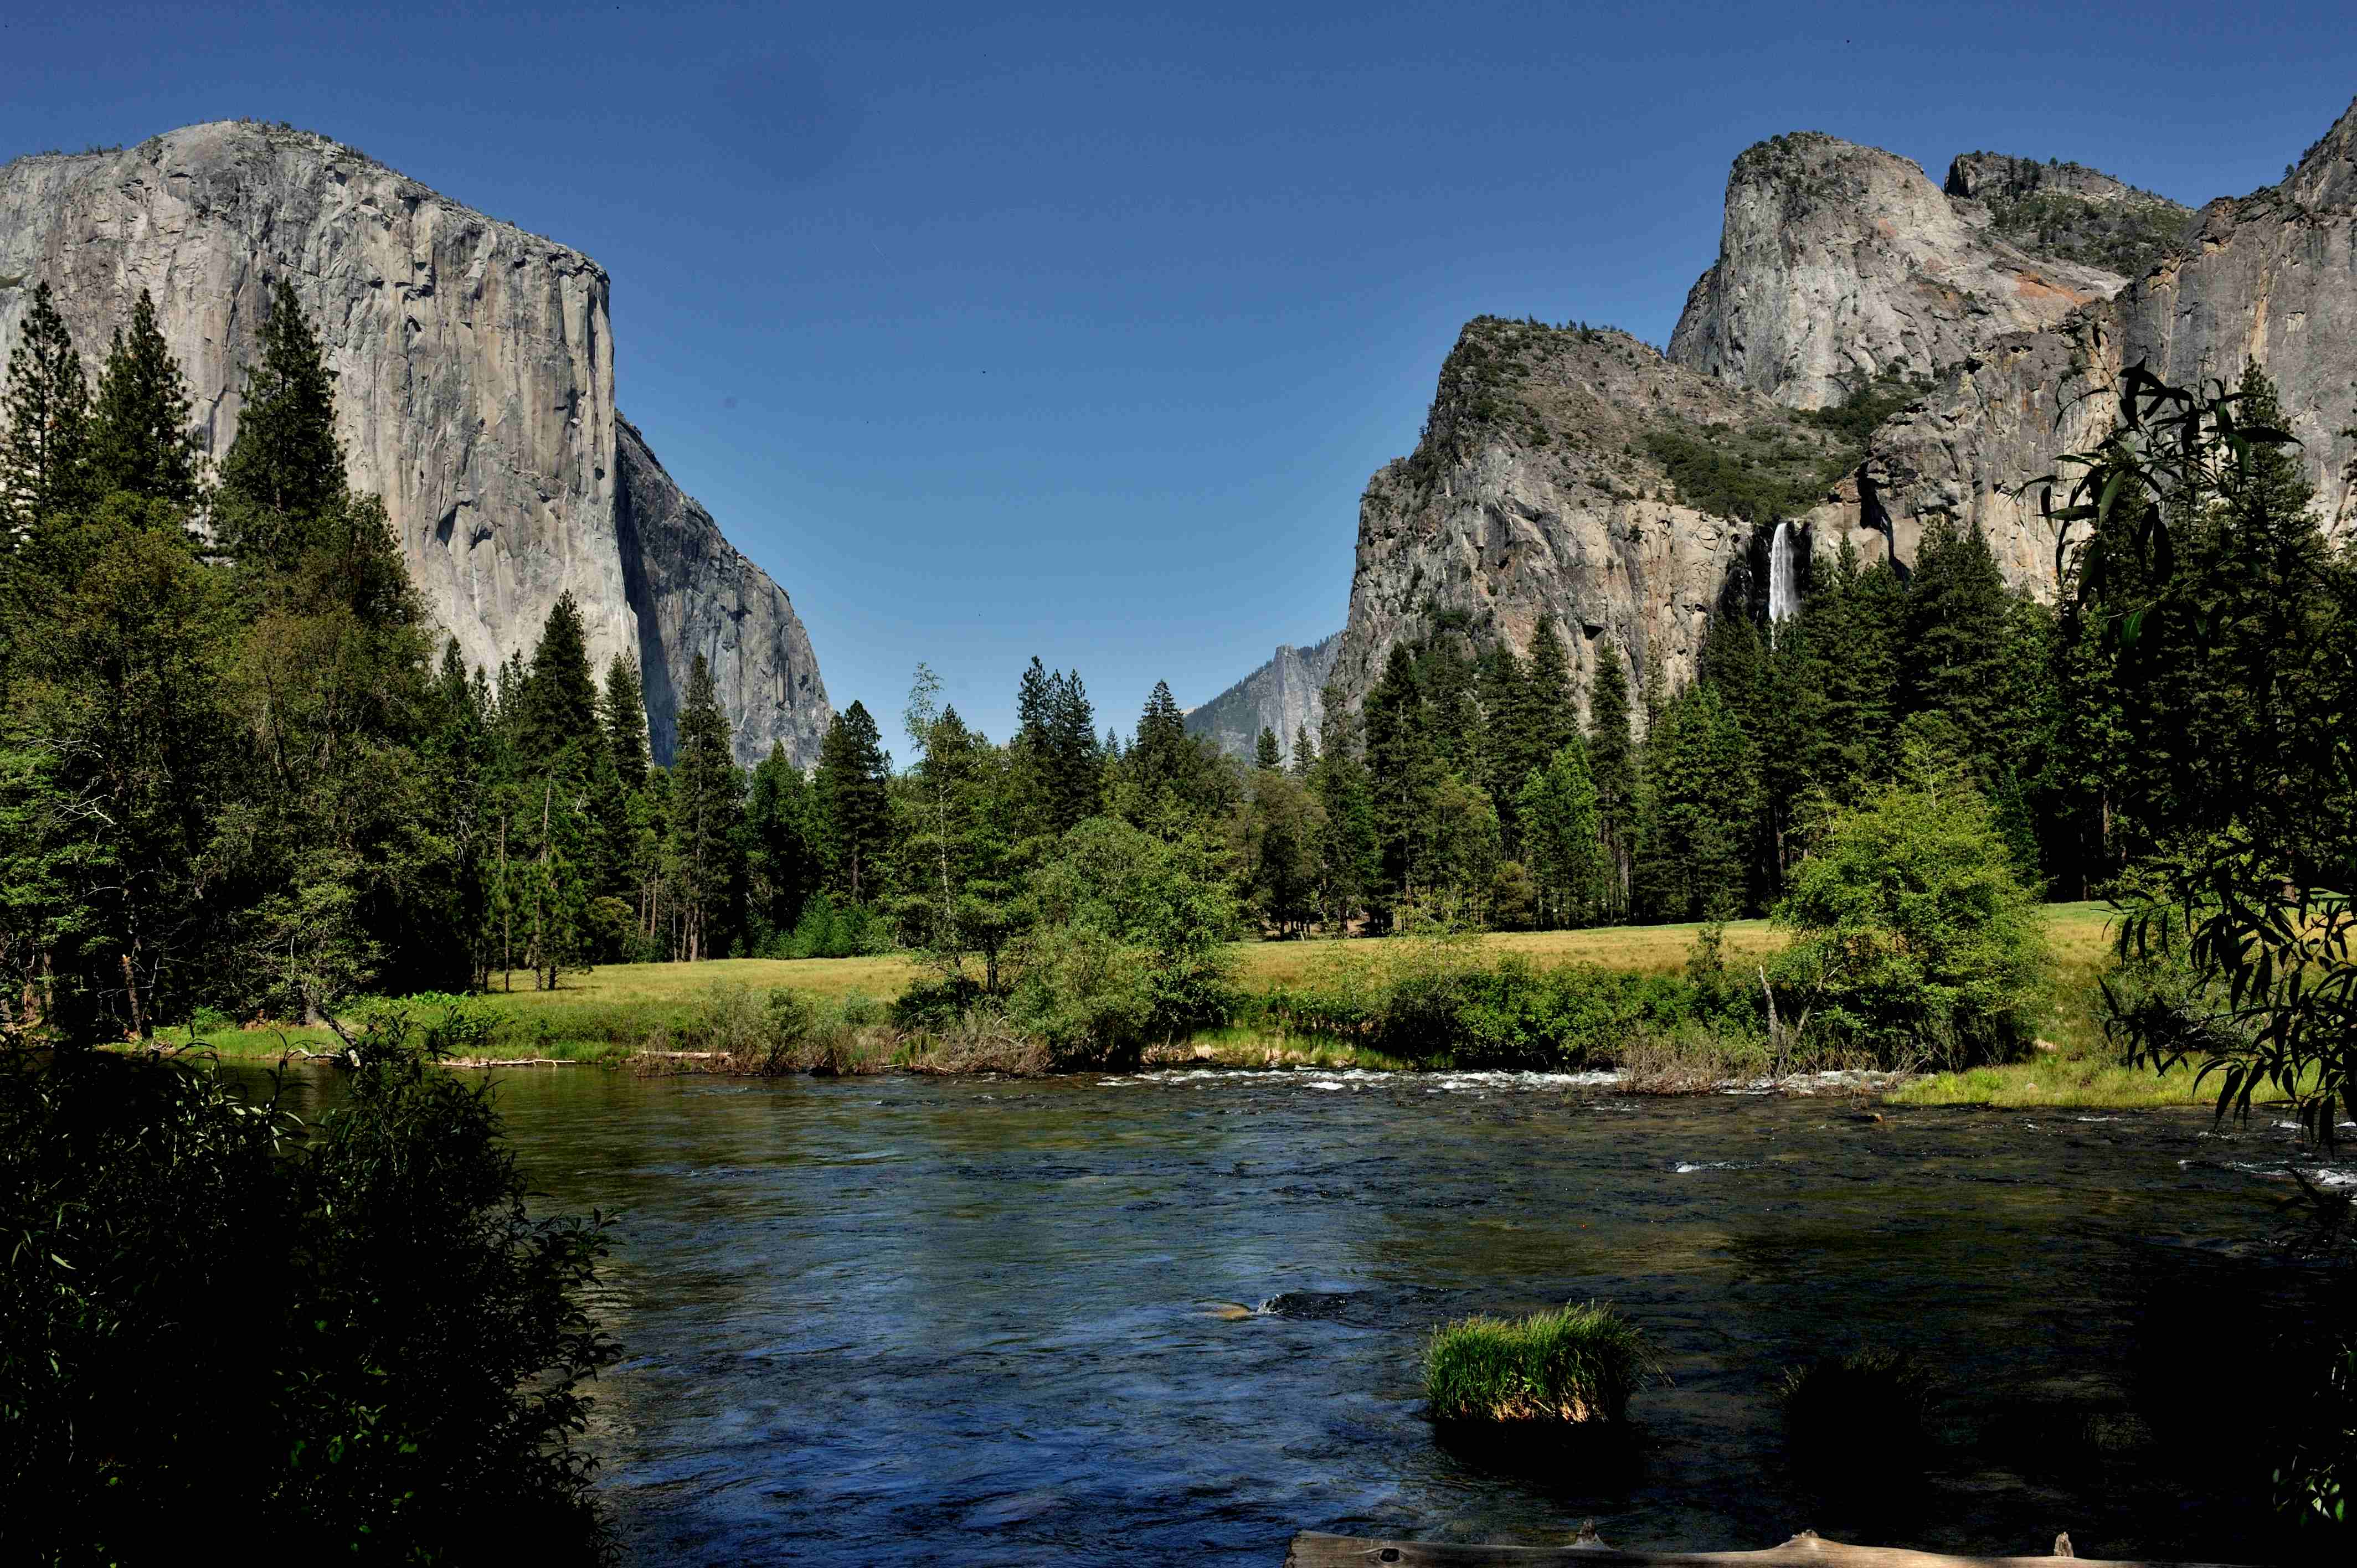 yosemite national park river hd free wallpapers